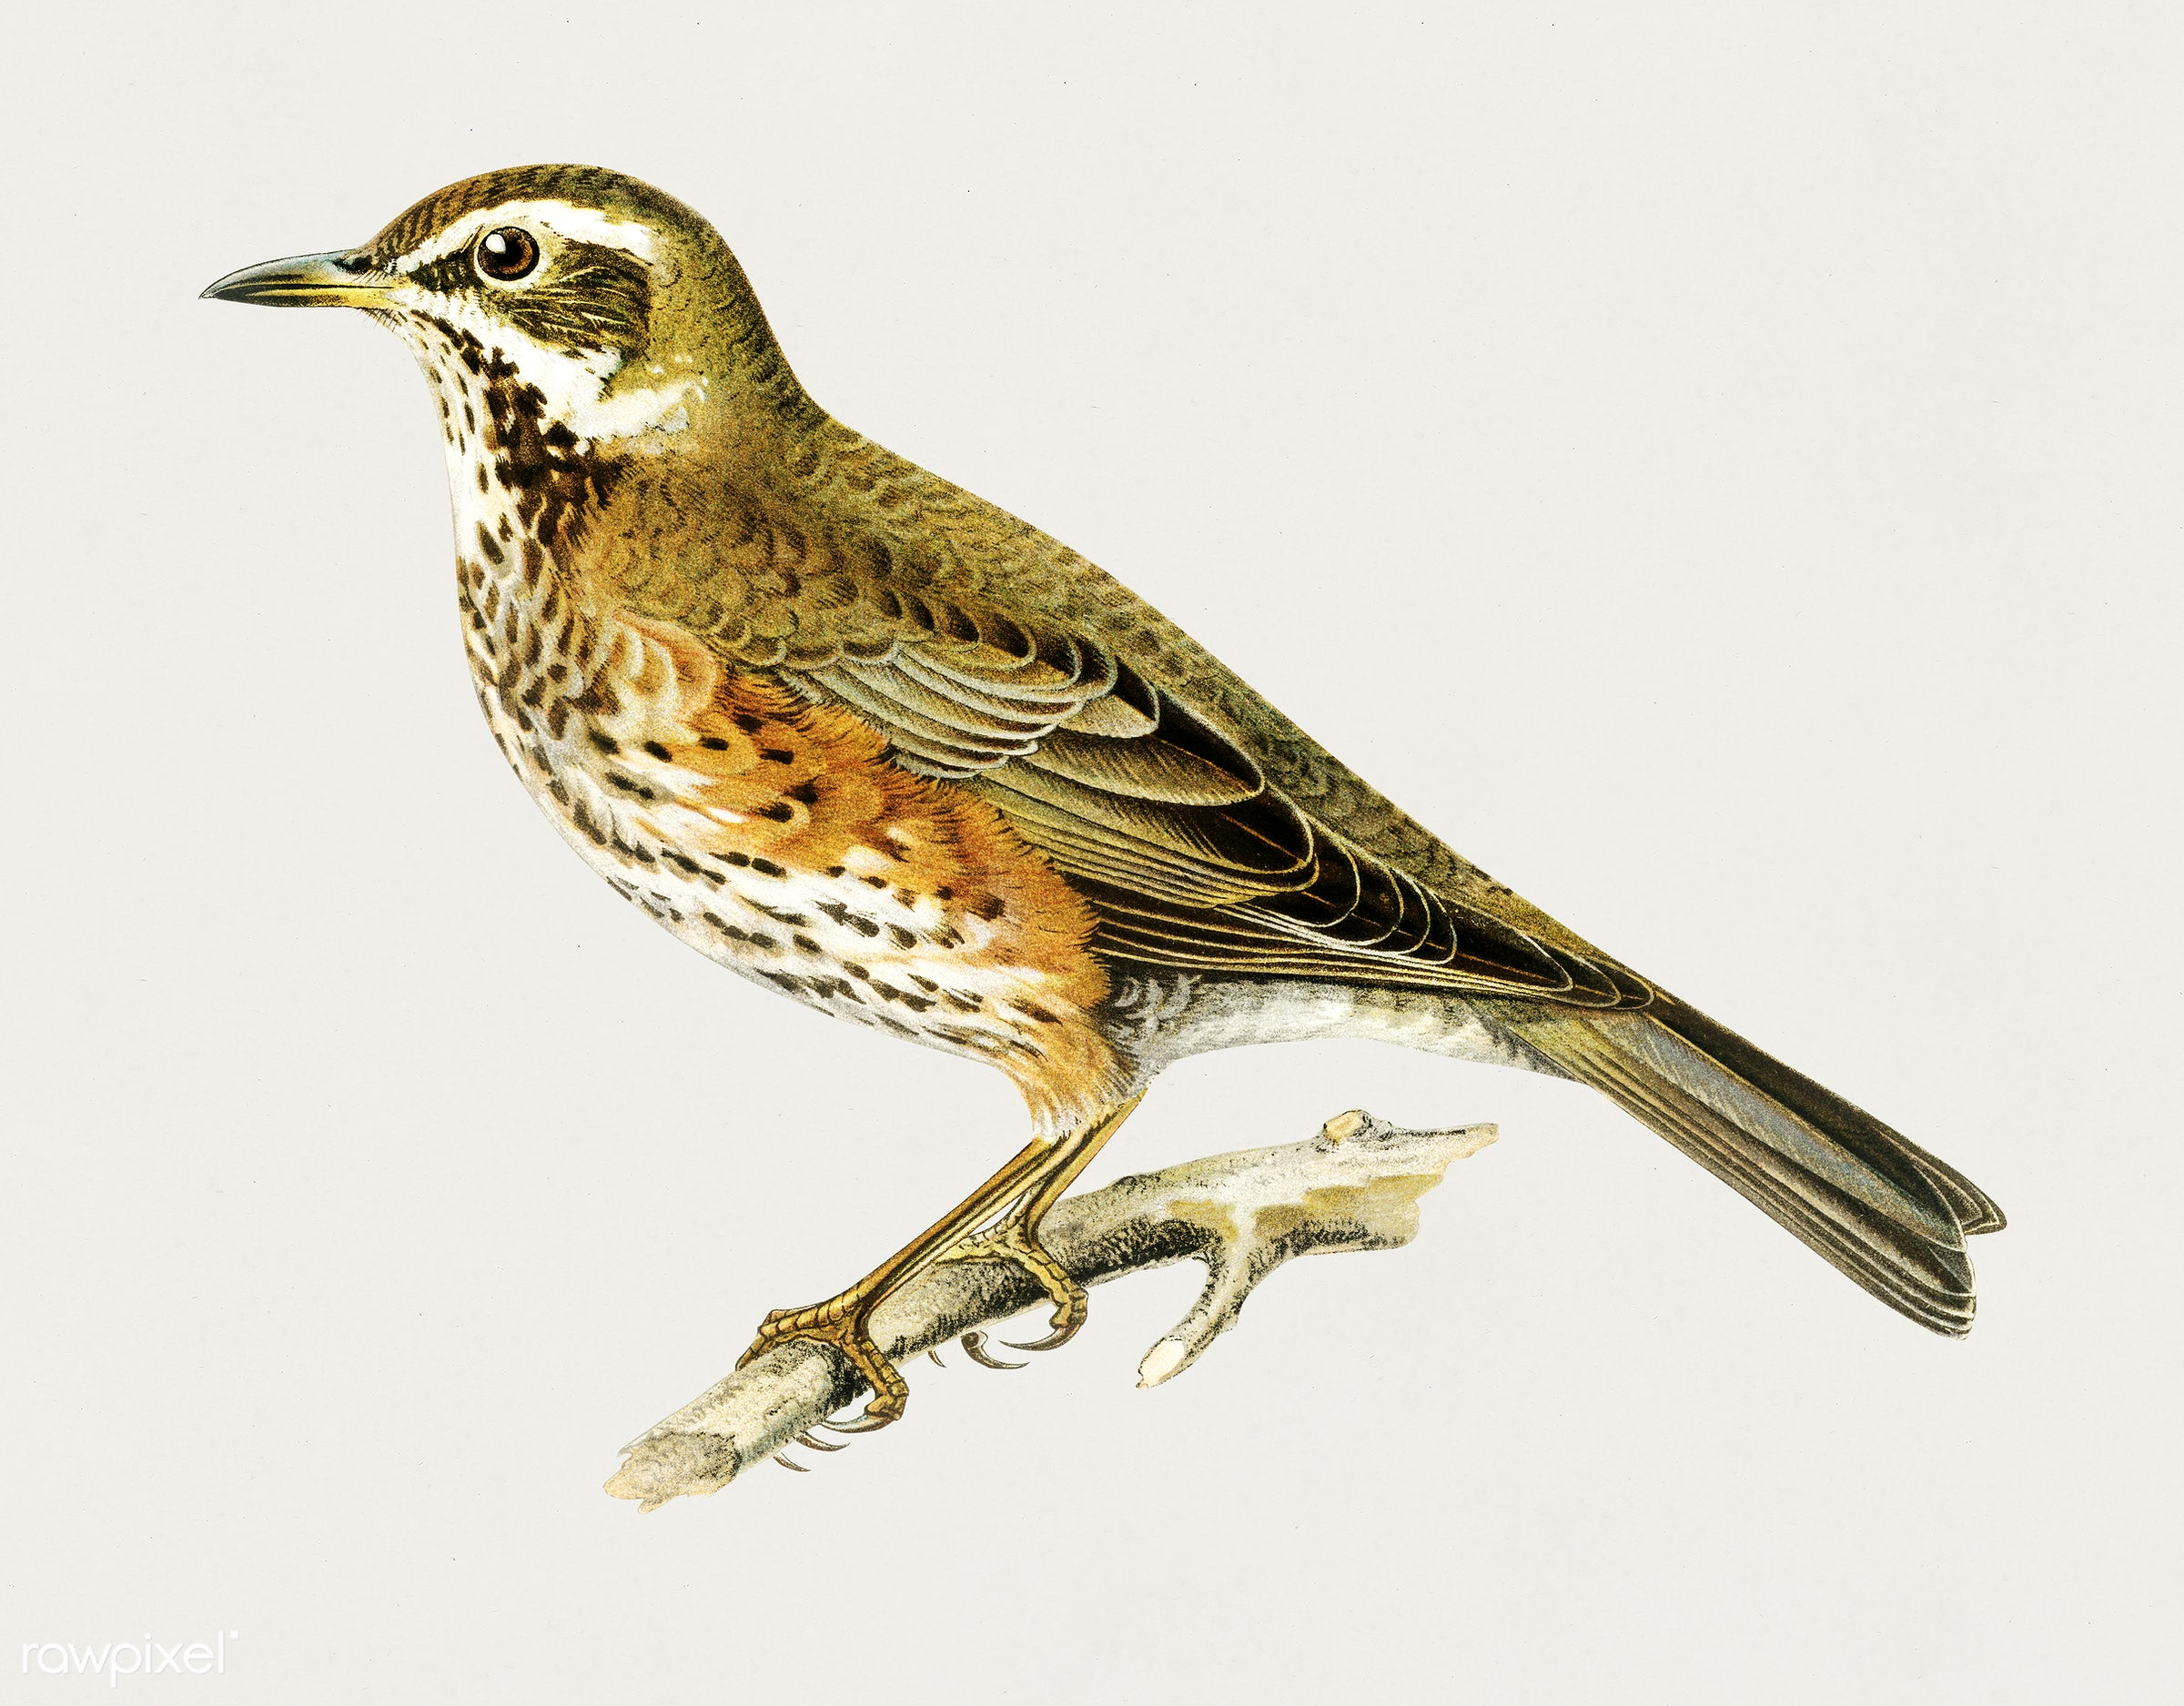 Redwing (Turdus iliacus) illustrated by the von Wright brothers. Digitally enhanced from our own 1929 folio version of...